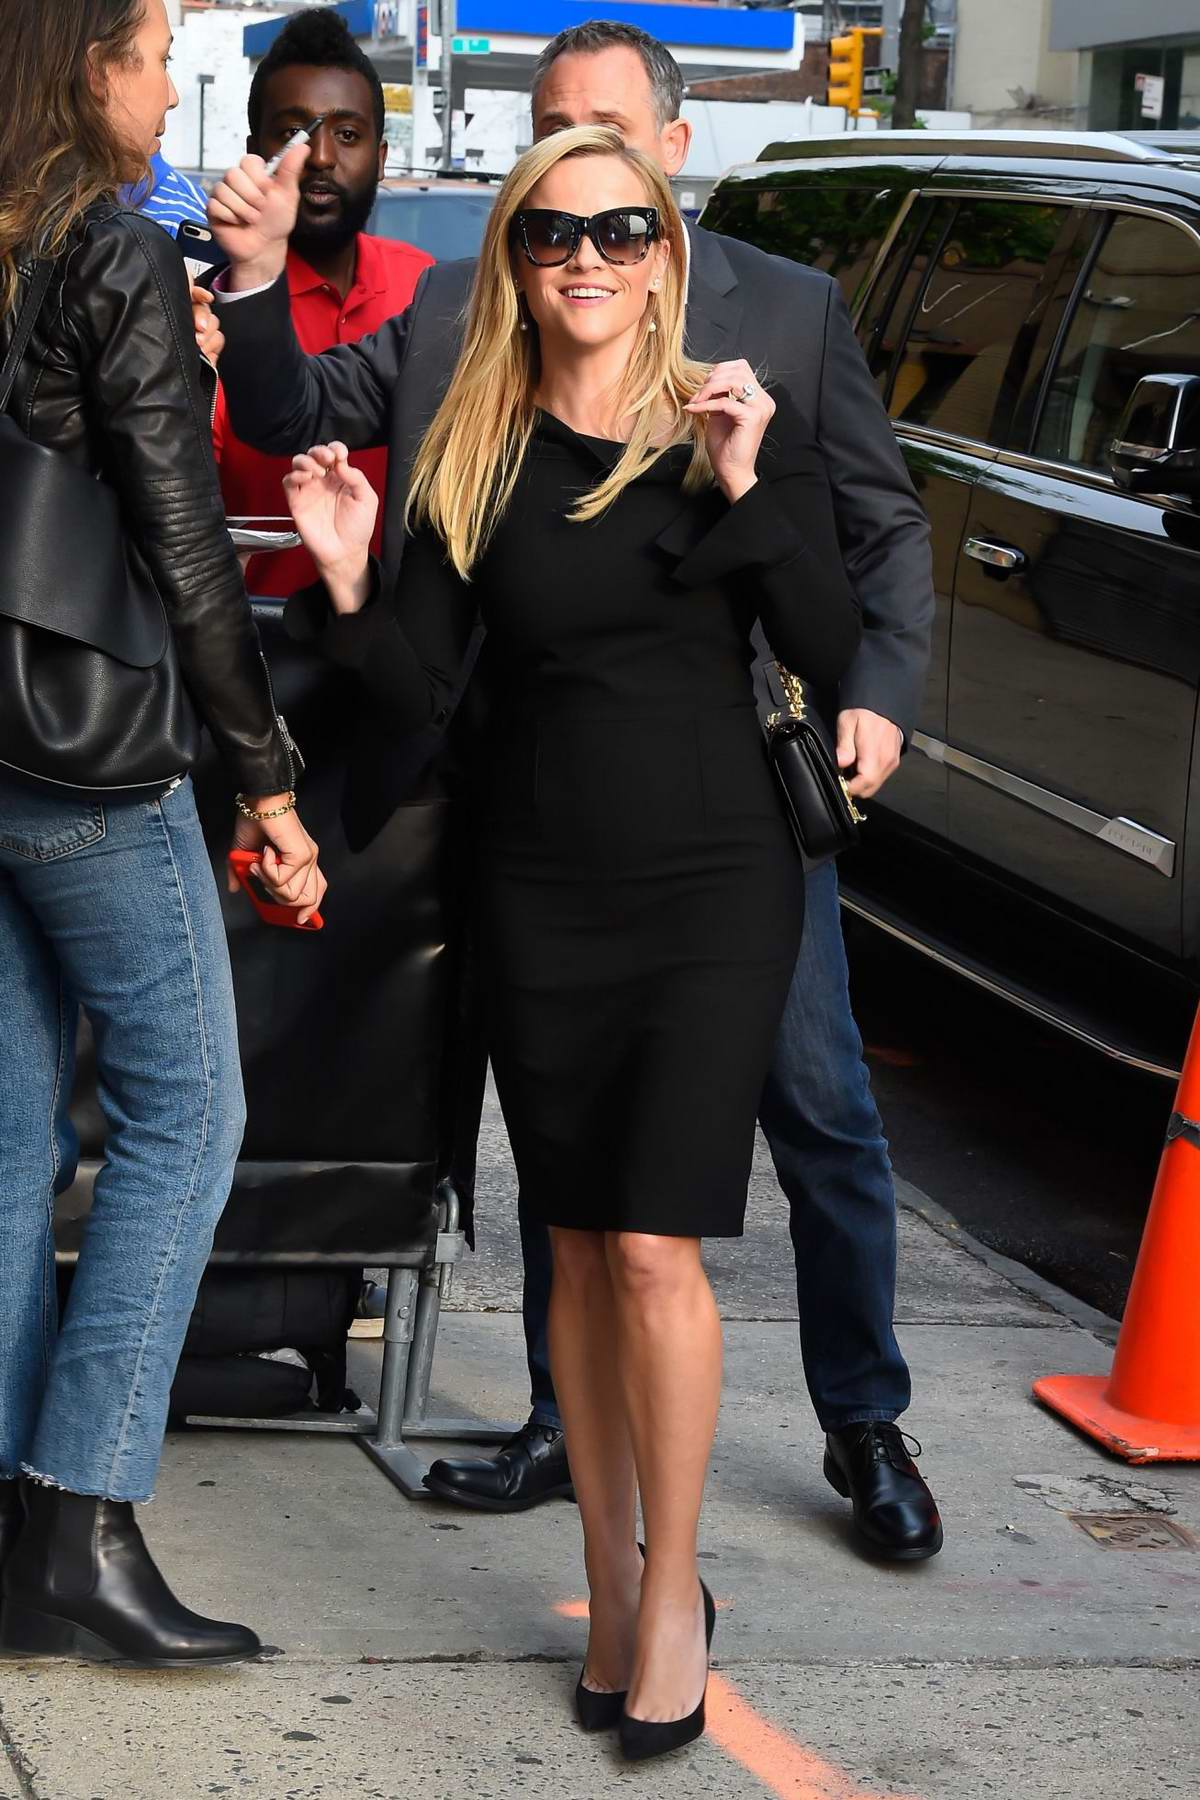 Reese Witherspoon smiles for camera as she arrives for her appearance on 'The Daily Show with Trevor Noah' in New York City